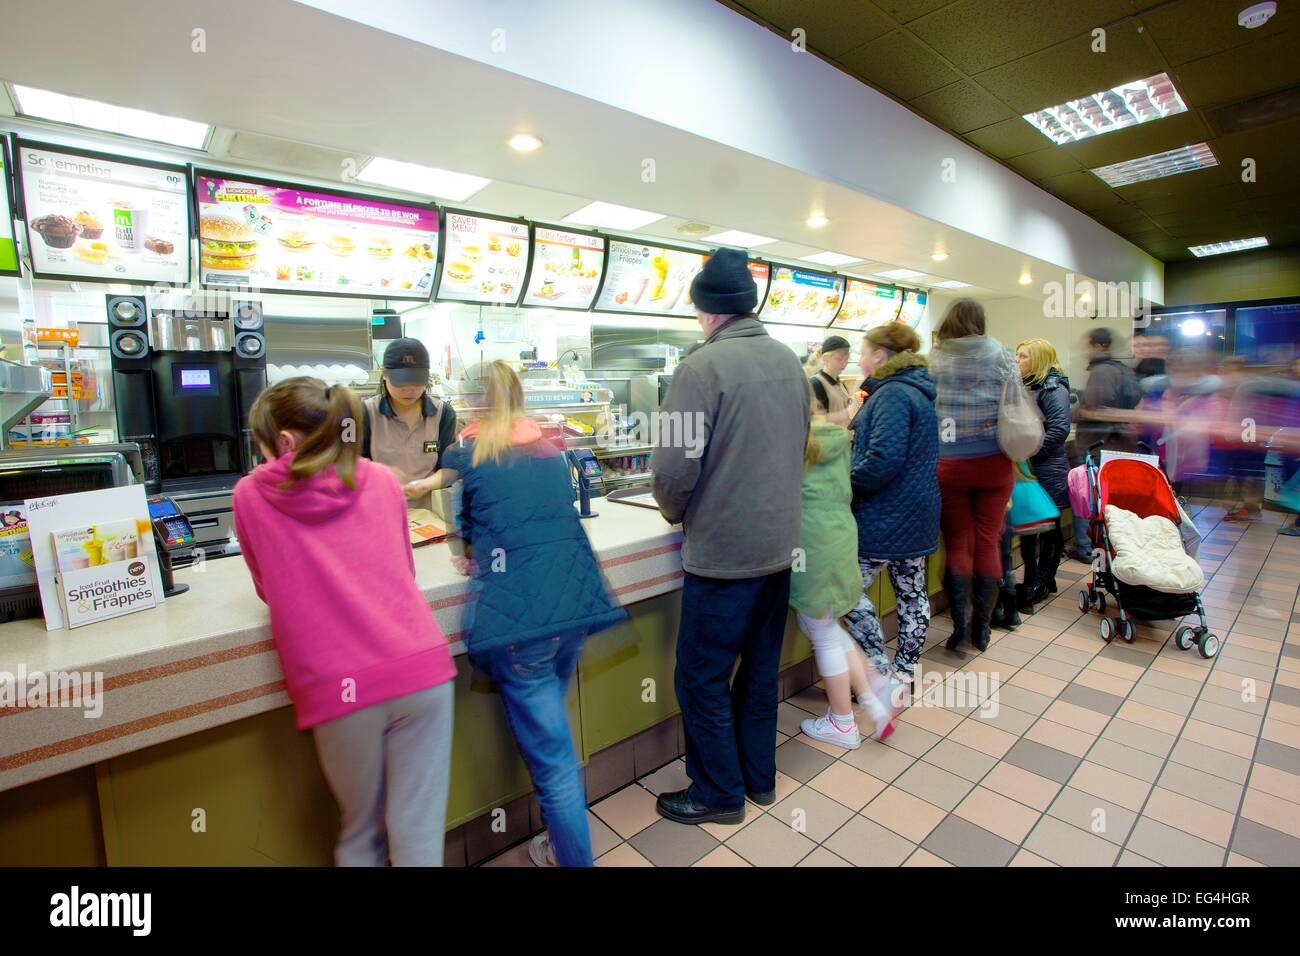 Customers at counter. McDonalds restaurant interior. - Stock Image